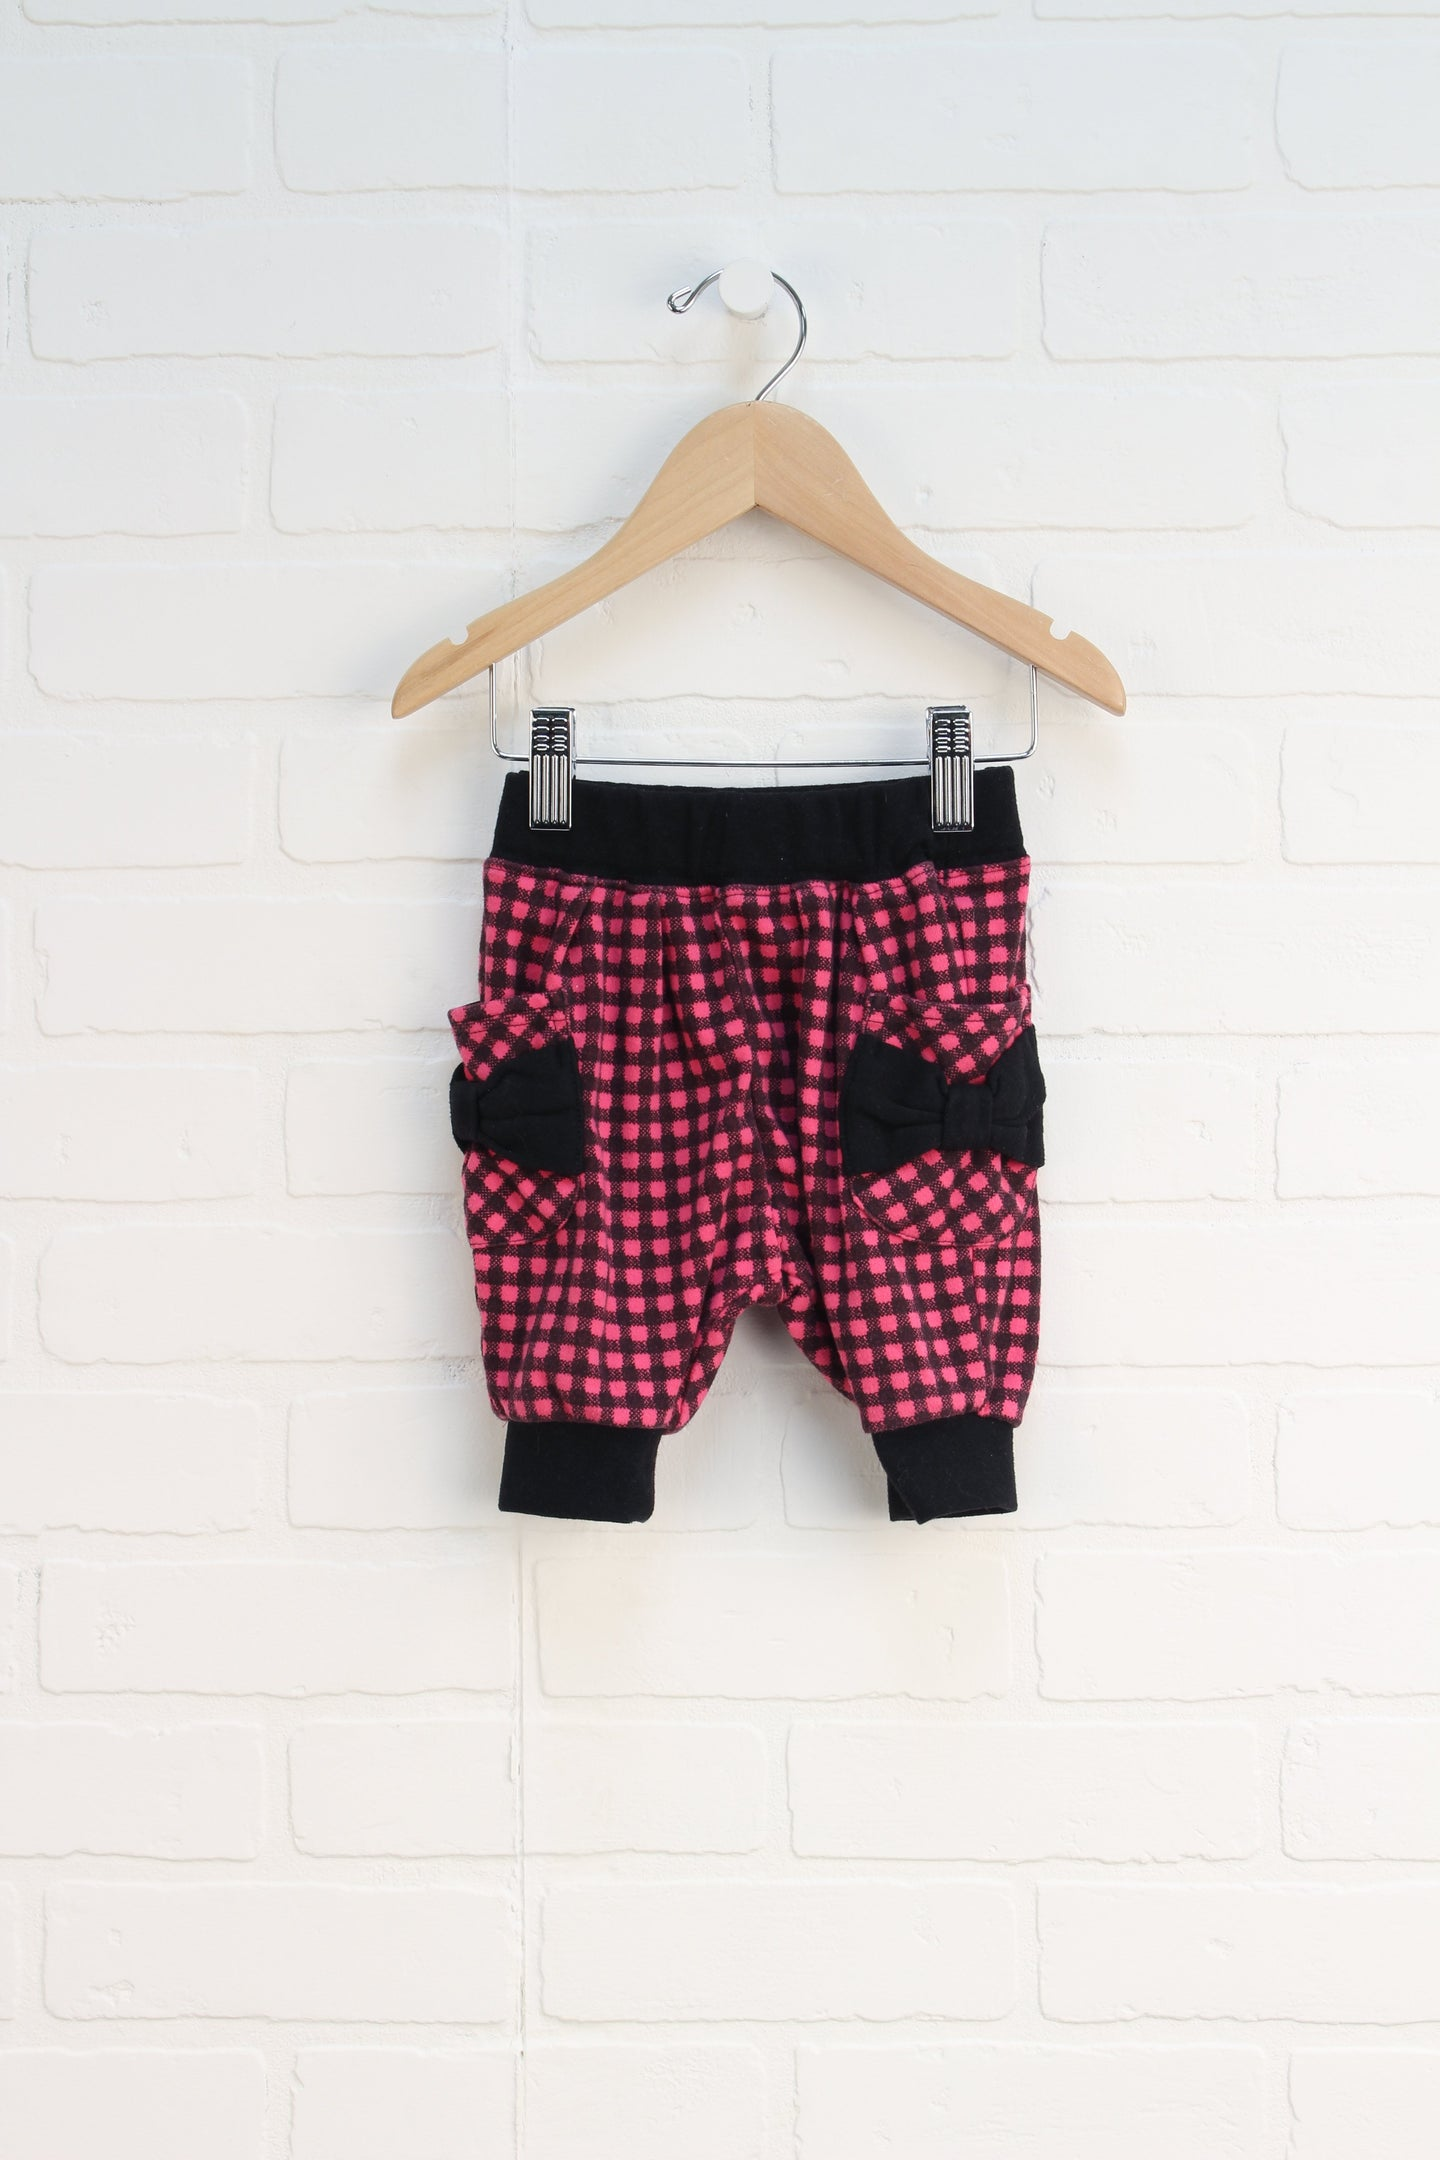 Black + Hot Pink Harem Shorts (Size 80/12-18M)